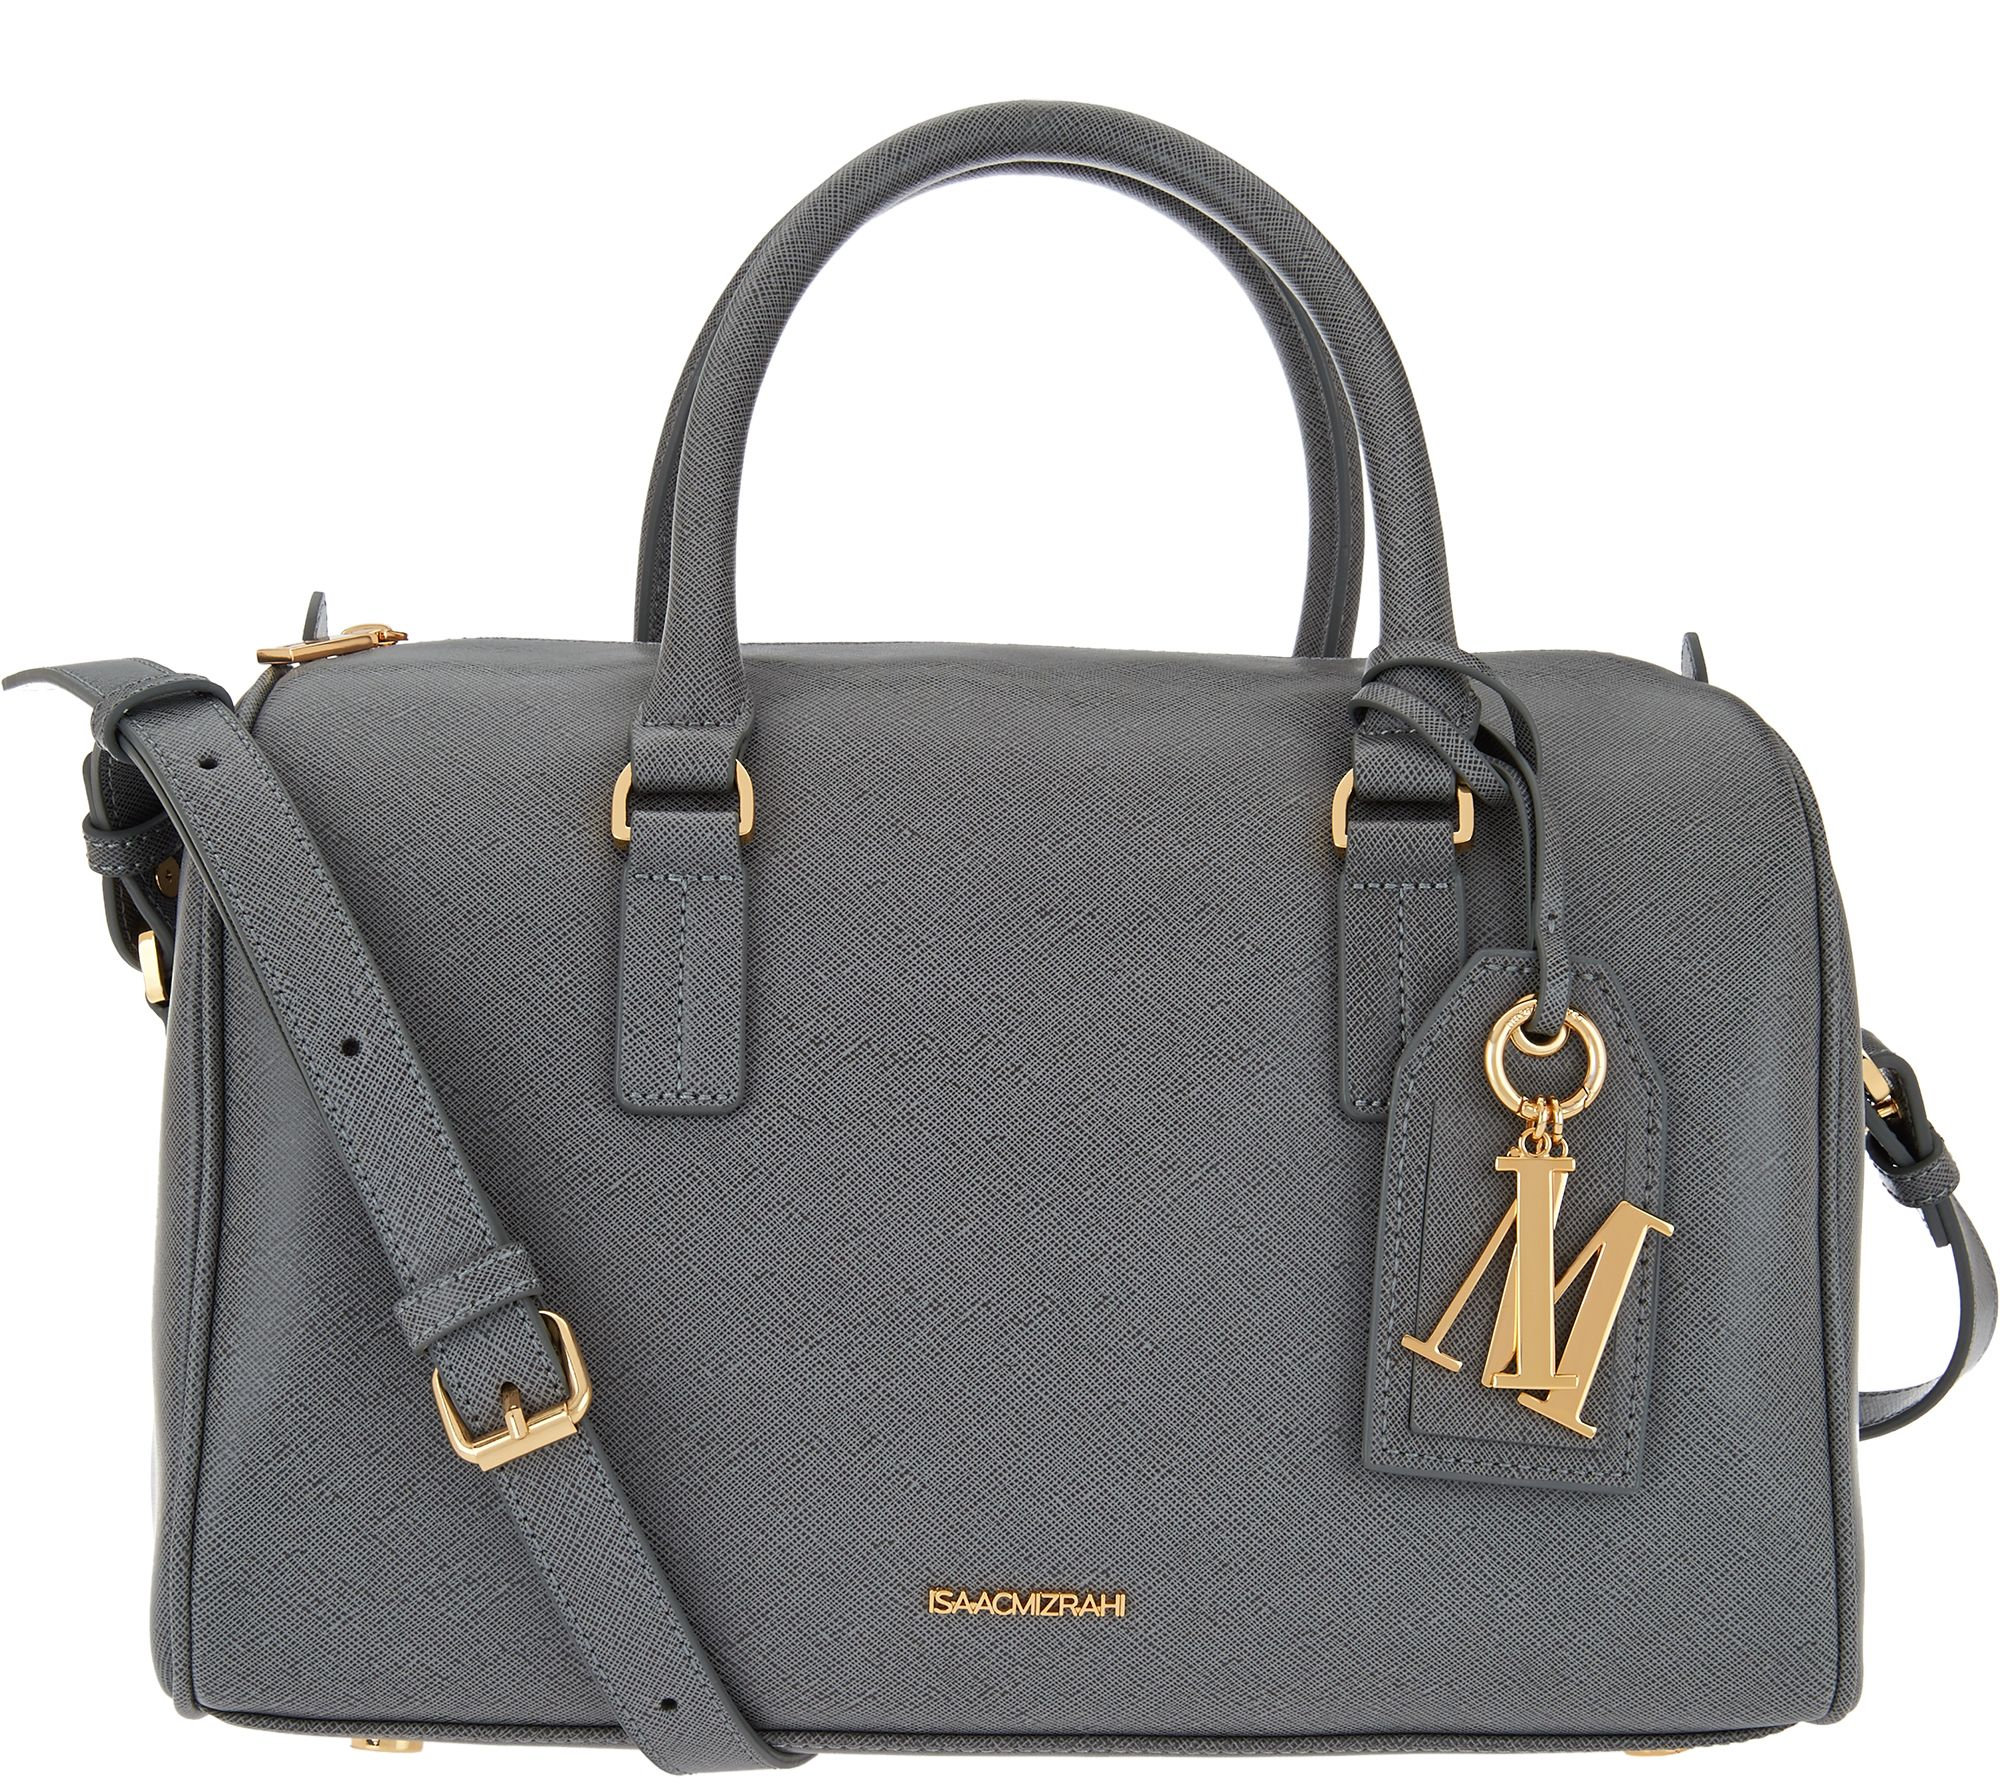 98308af5cca4 Isaac Mizrahi Live! Signature Saffiano Leather Satchel Handbag ...